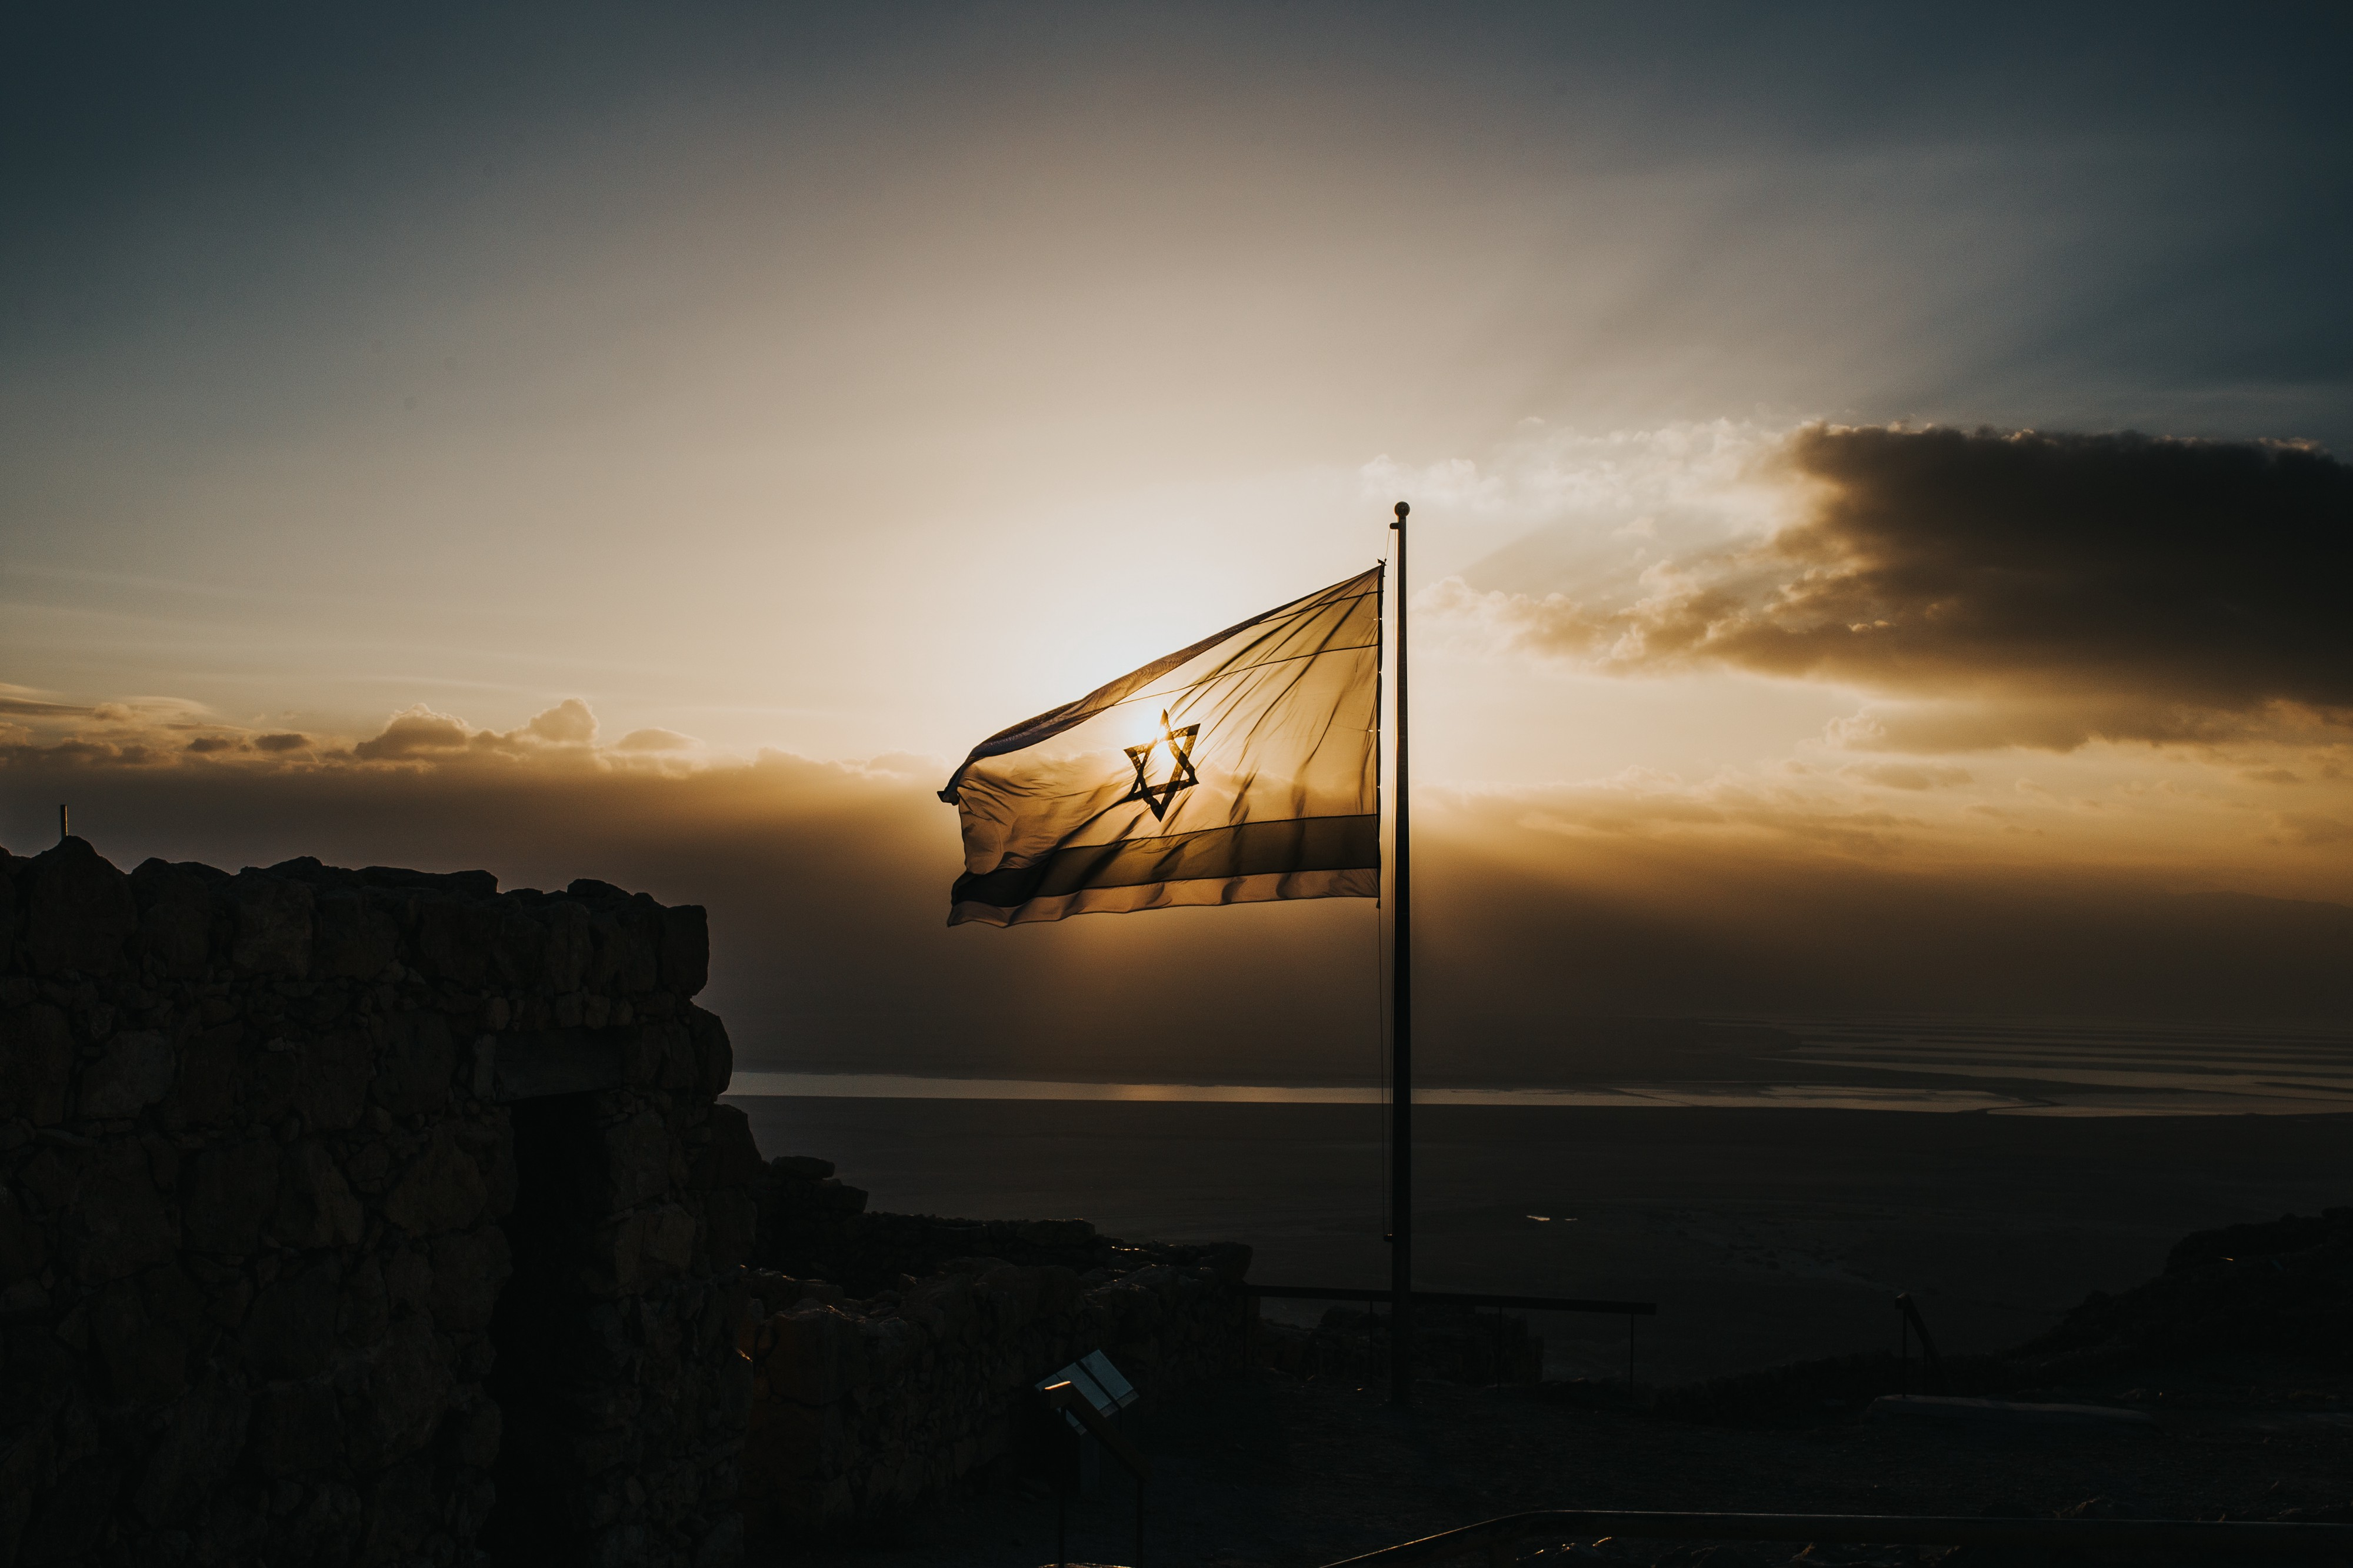 An Israeli flag waves in the wind against a dark sunset.